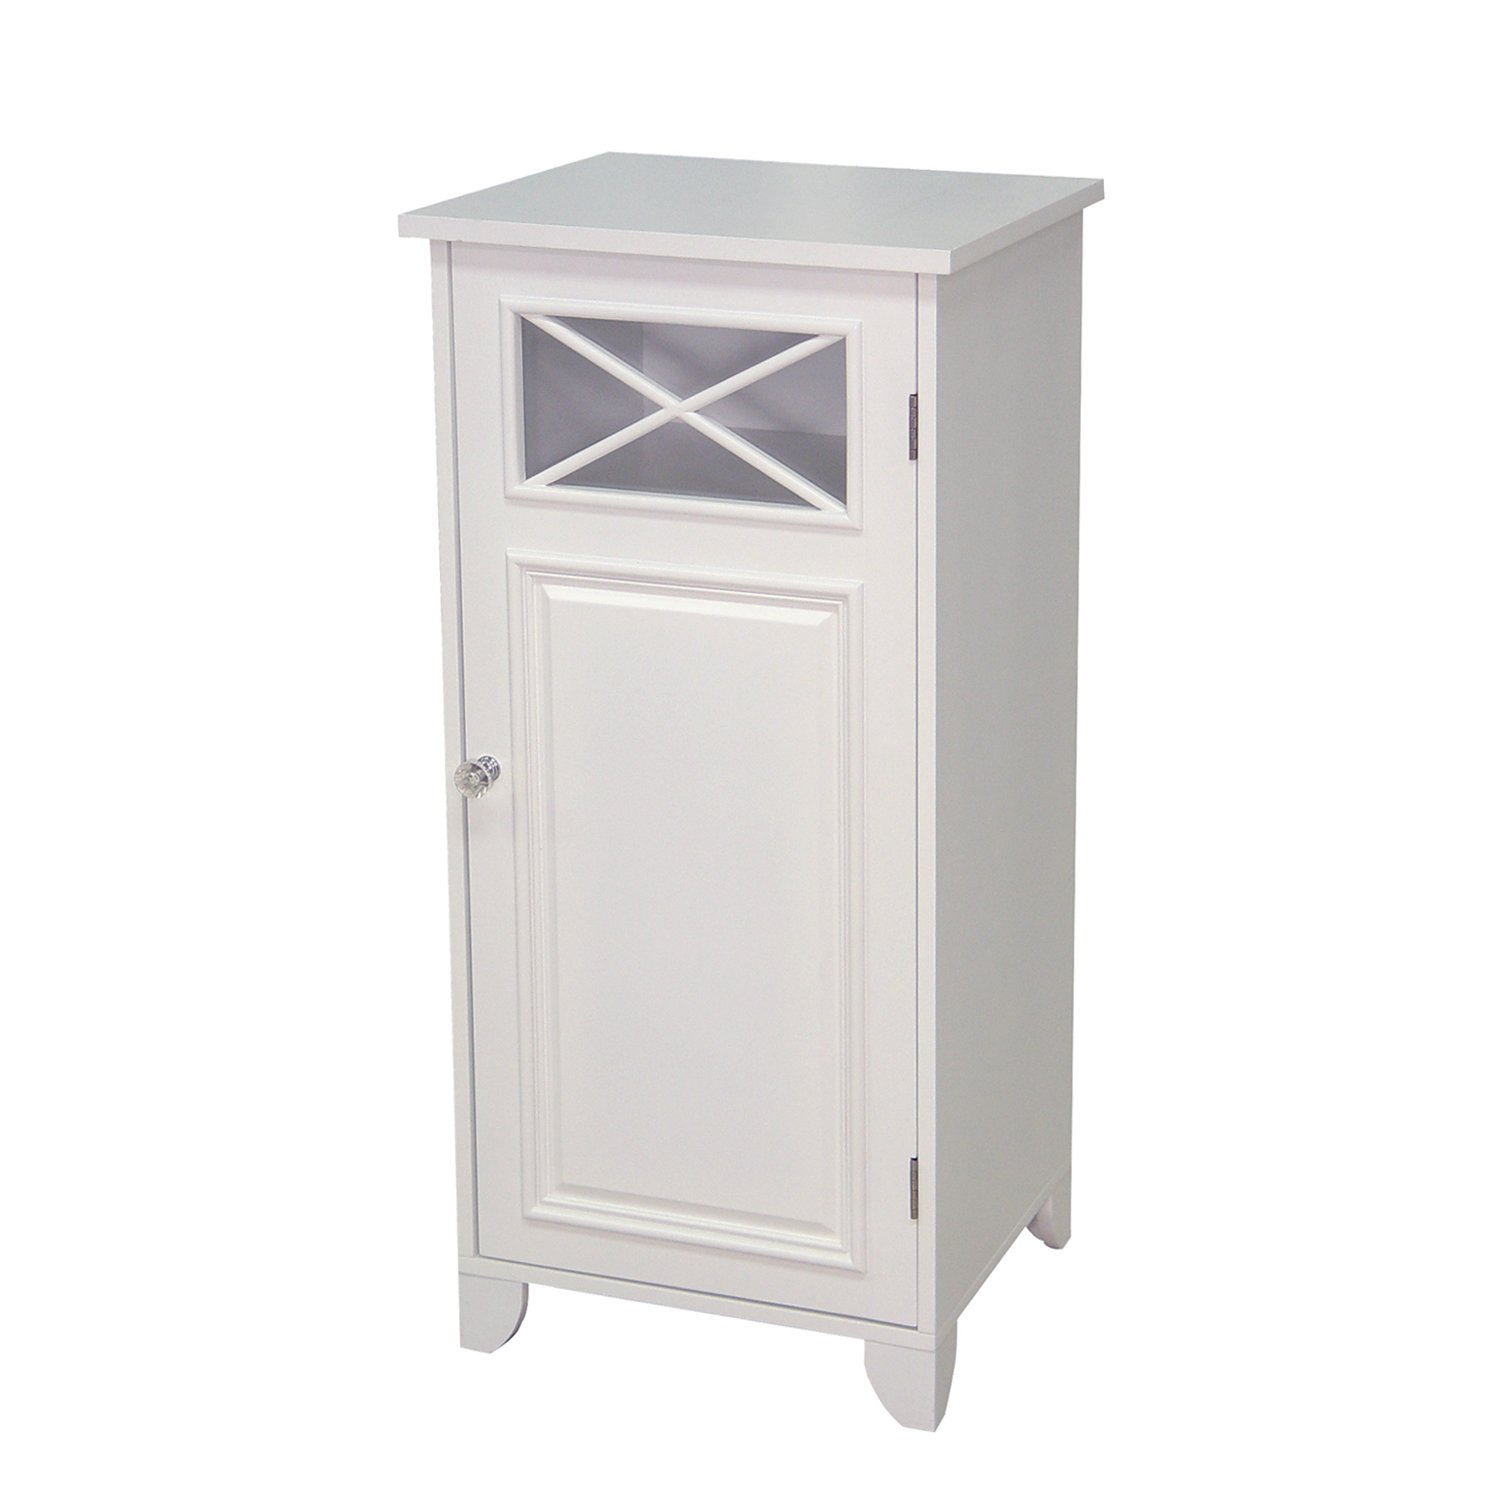 Lovely Amazon.com: Elegant Home Fashions Dawson Floor Cabinet With Single Door,  White: Kitchen U0026 Dining